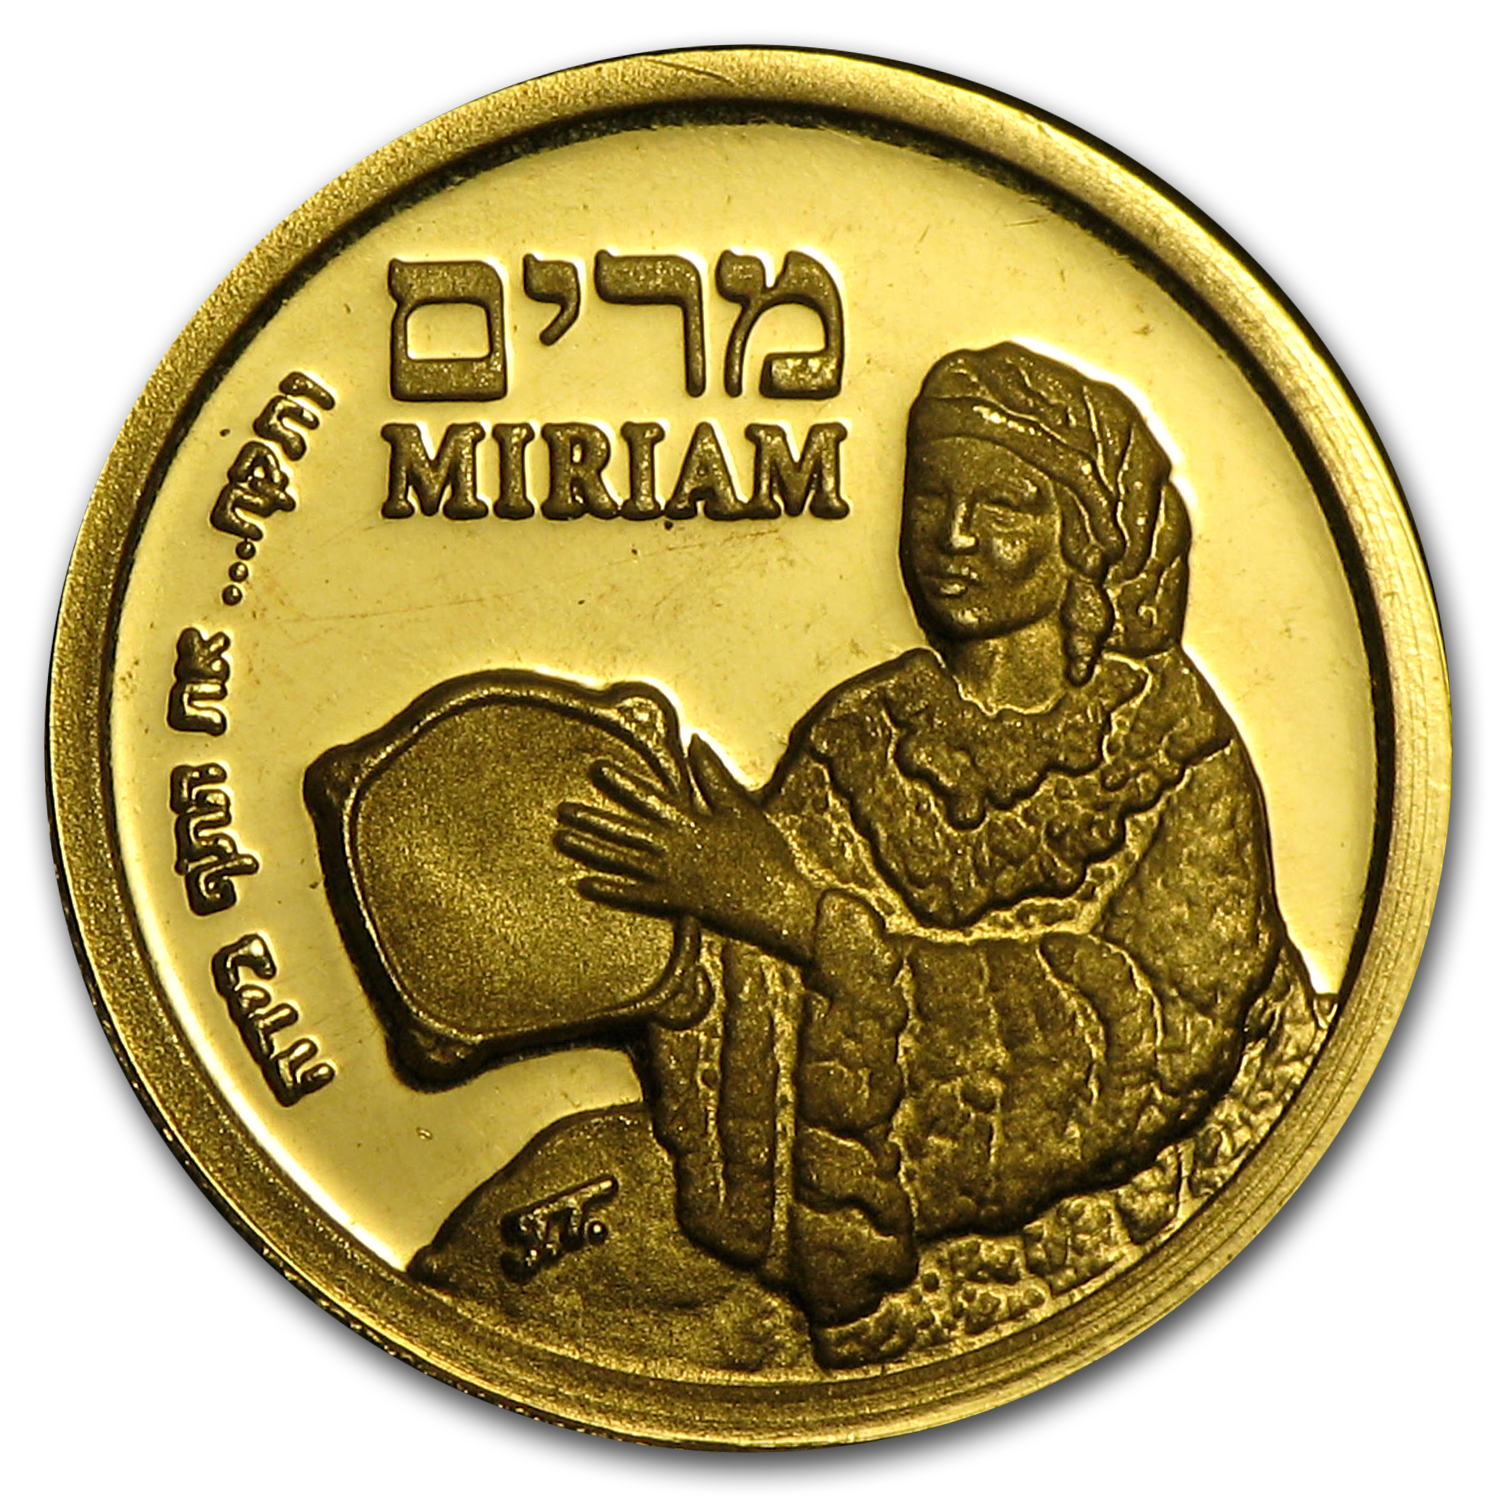 2010 Israel Miriam-Smallest Pure Gold Medal AGW 1/25 oz